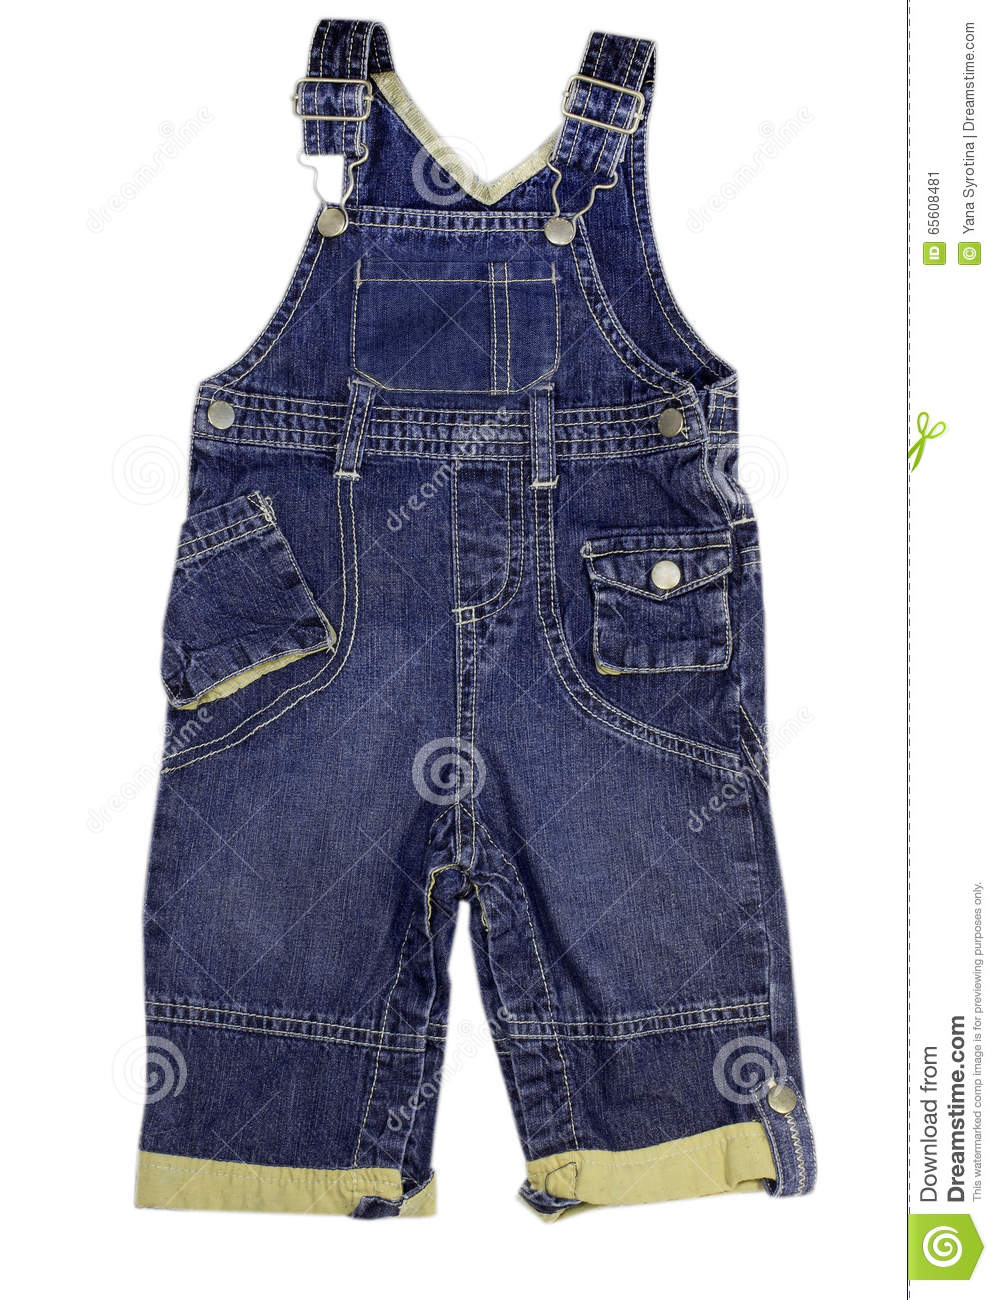 Child Jeans Male Trousers Jumpsuit Isolated Stock Image